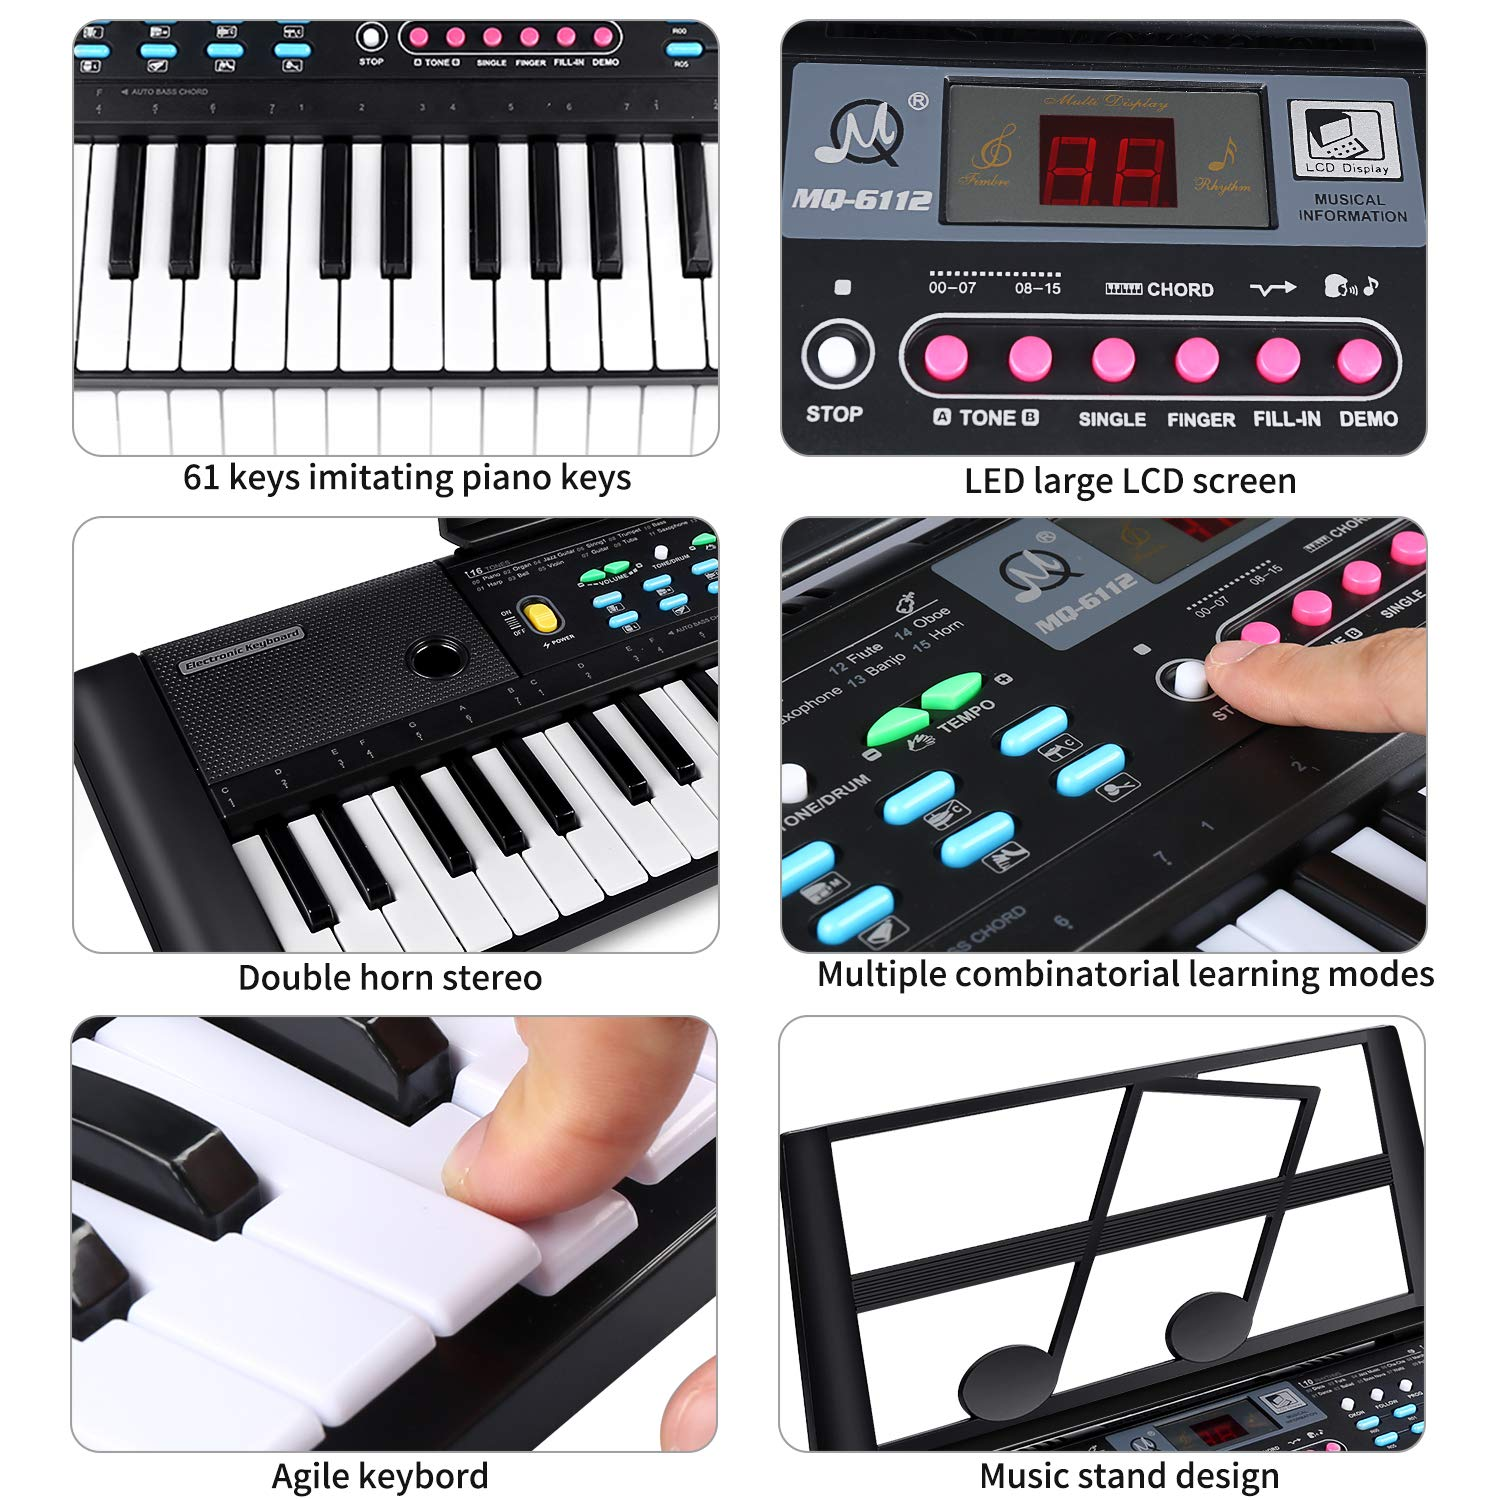 ZJTL 61-Key Digital Electric Piano Keyboard & Music Stand & microphone- Portable Electronic Keyboard (Kids & Adults) MQ-6112 by ZJTL (Image #5)